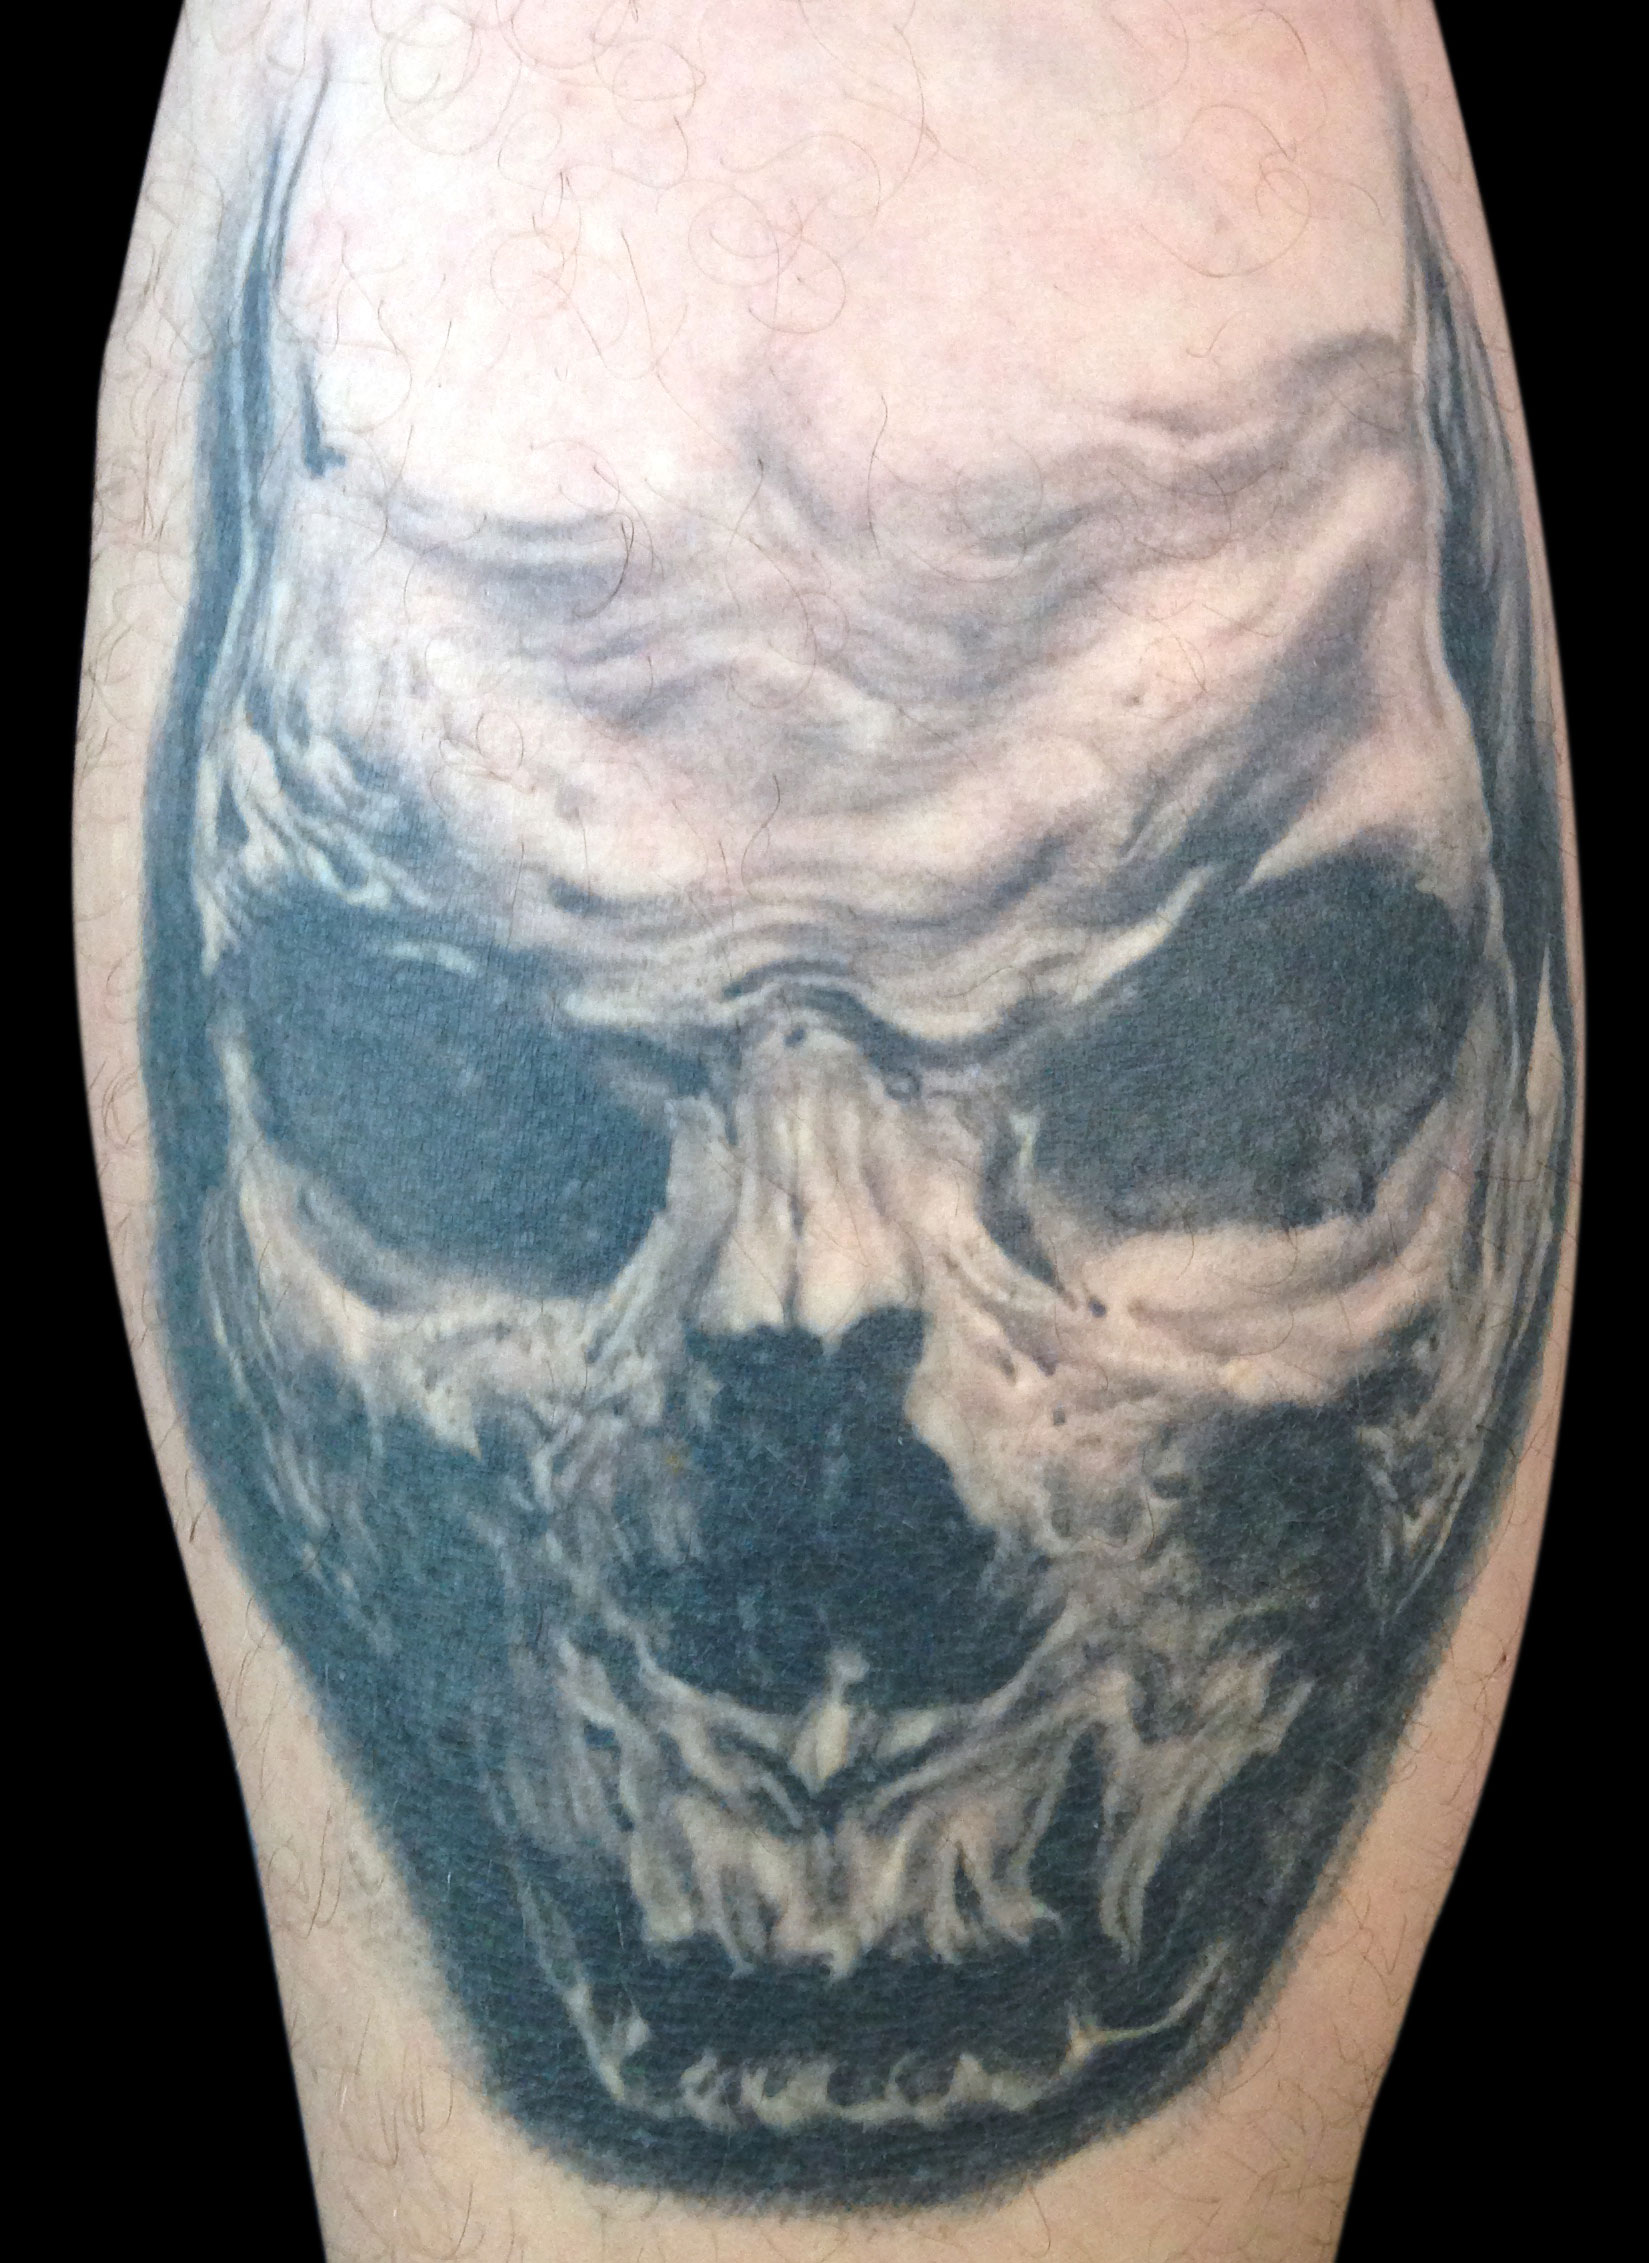 Black and Grey Horror Skull Tattoo on Rico Schinkel, (healed first session) on calf